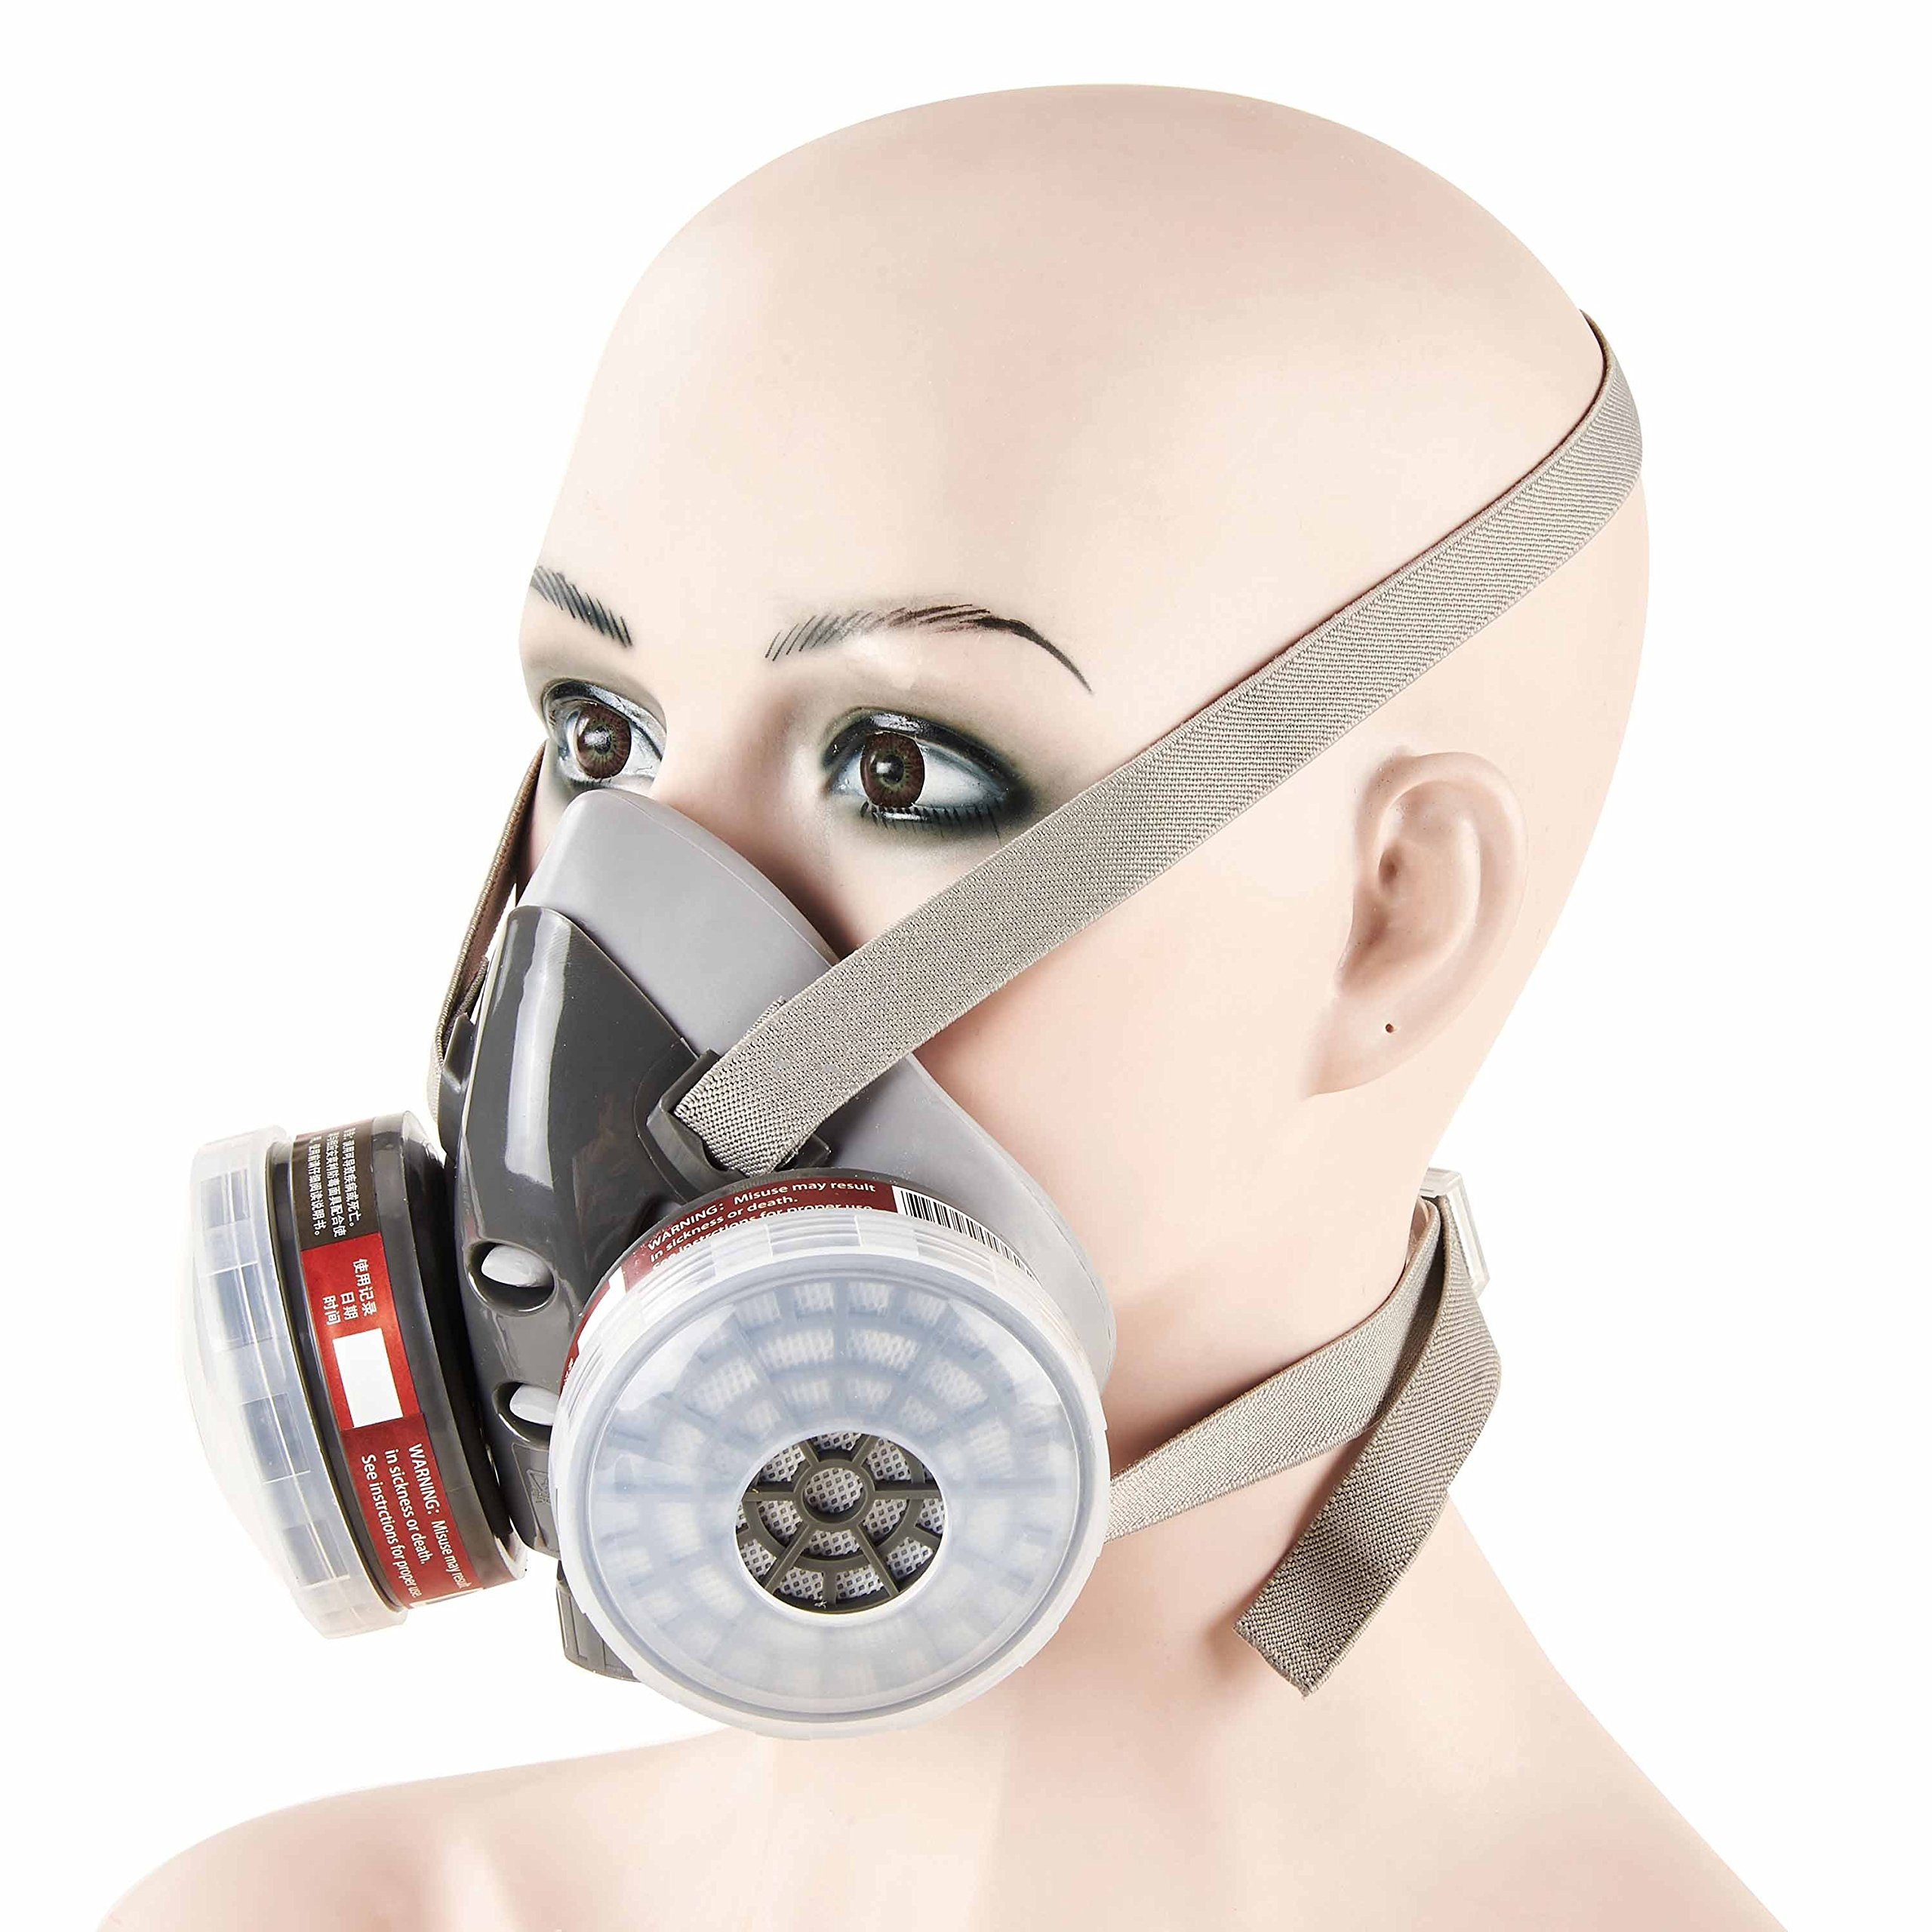 Mufly Respirator Anti -Dust Industrial Mask PM 2.5 Half Face Piece Reusable Respirator Paint Breathing Mask Face Protection by Mufly (Image #2)